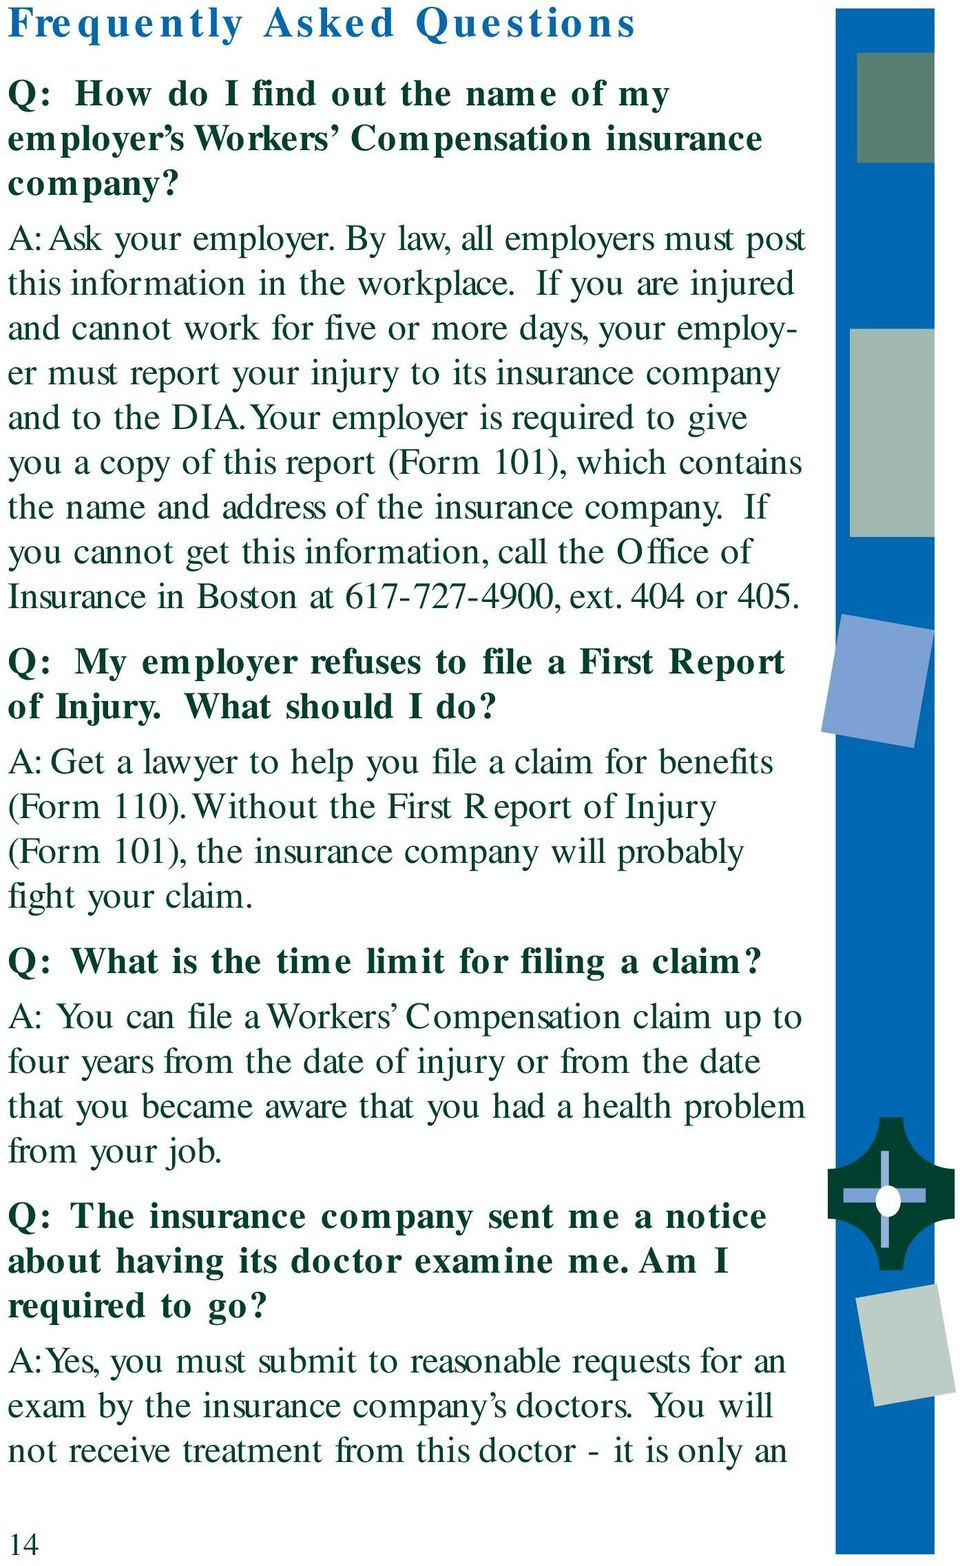 If you are injured and cannot work for five or more days, your employer must report your injury to its insurance company and to the DIA.